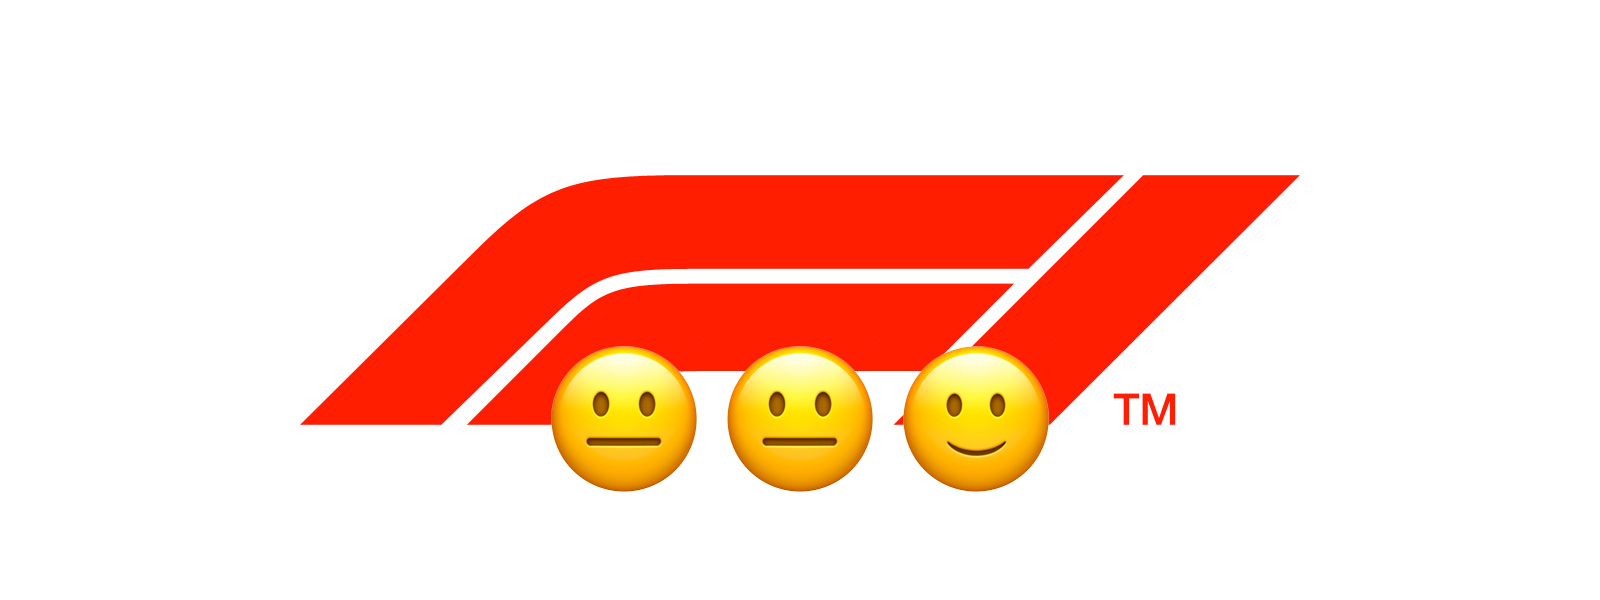 F1 Logo Appreciation